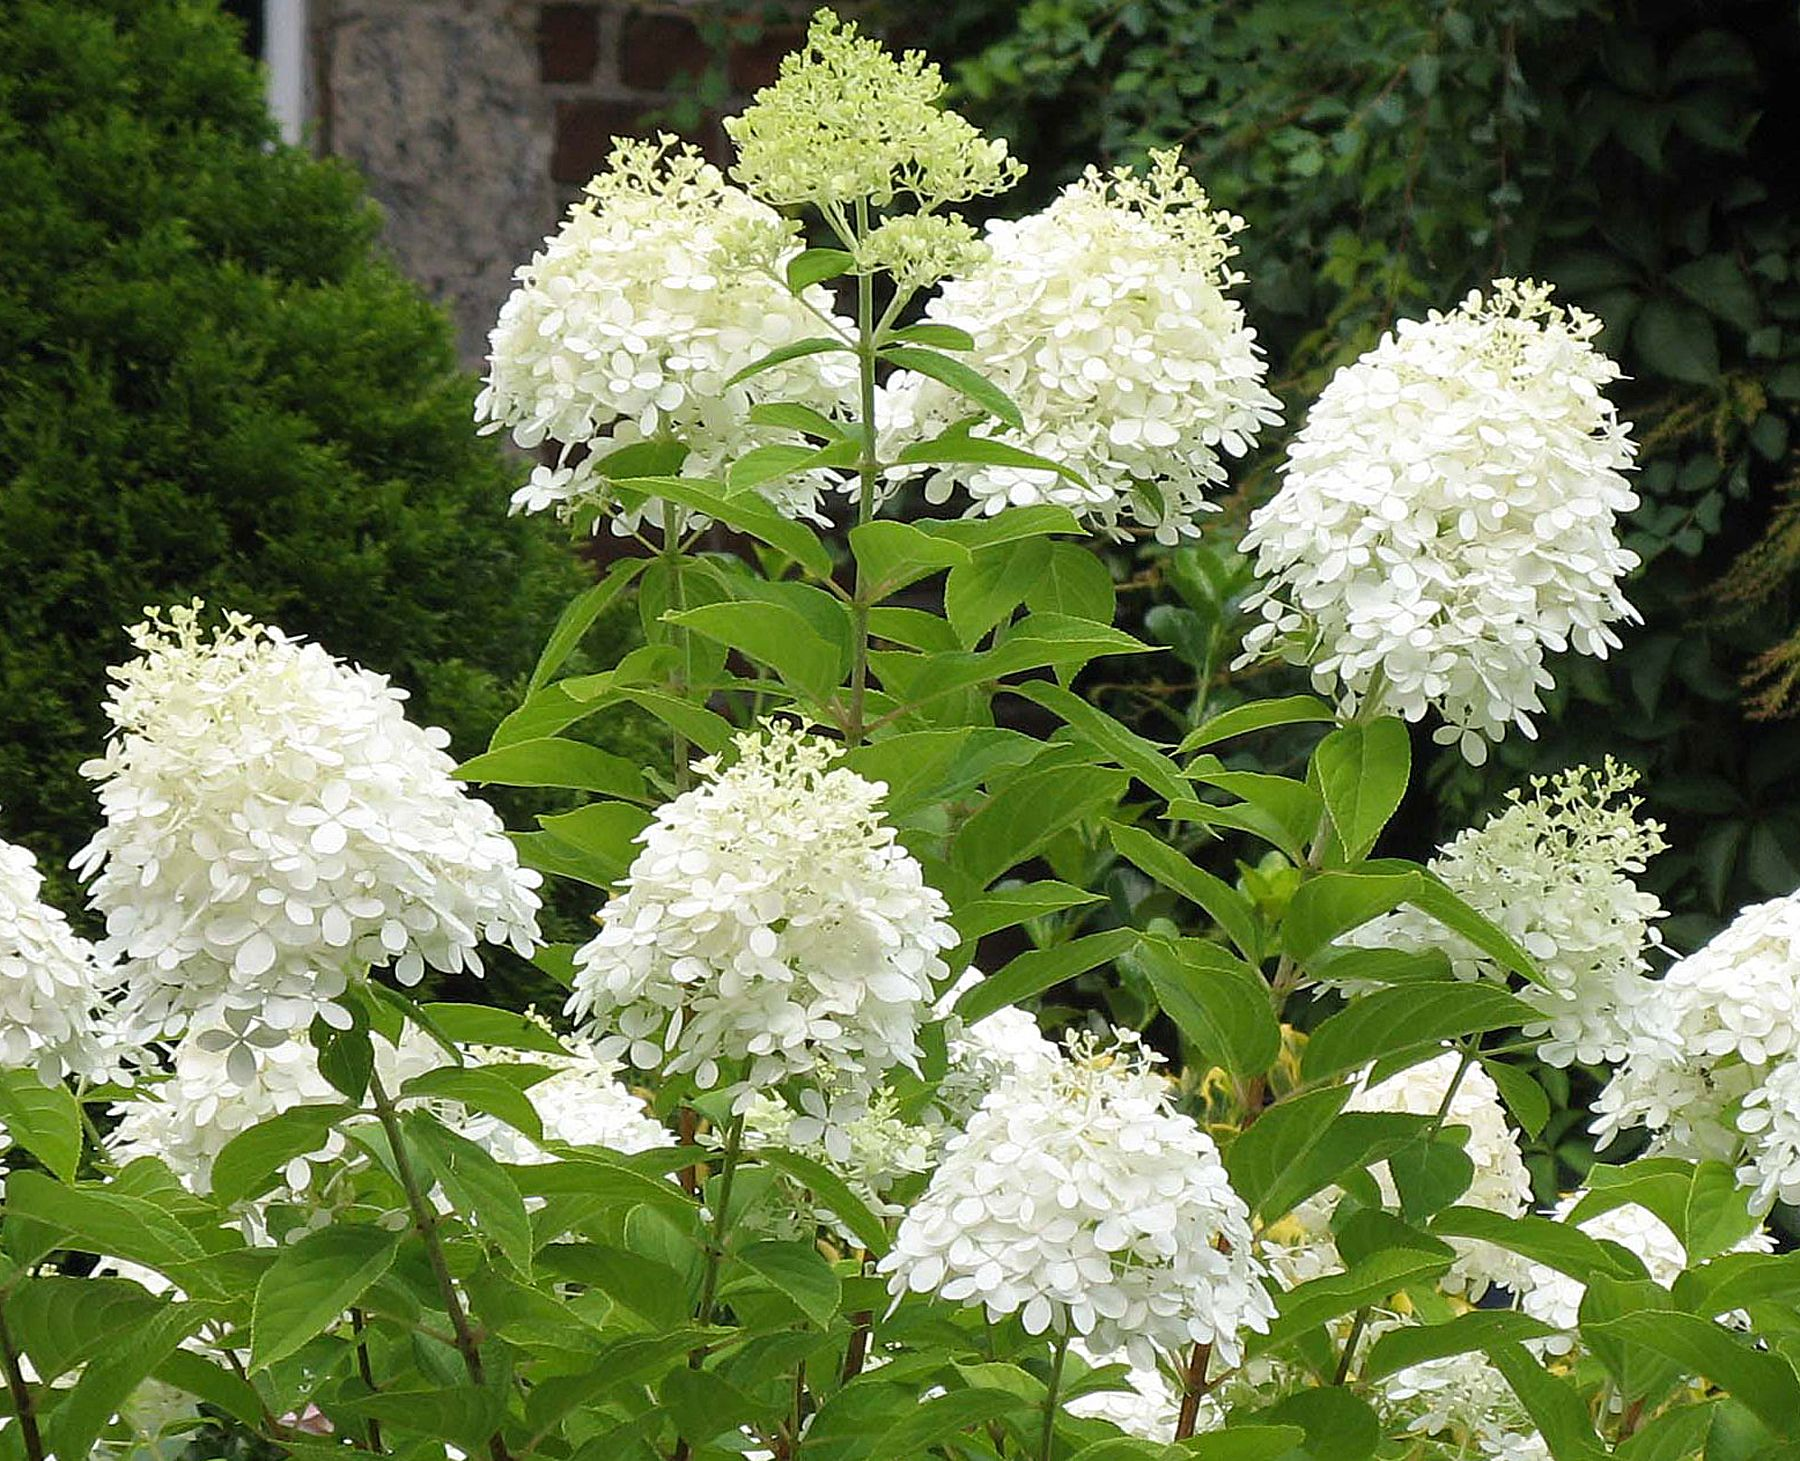 Pee Gee Hydrangea 125mvery Large Cone Shaped White Flower Heads